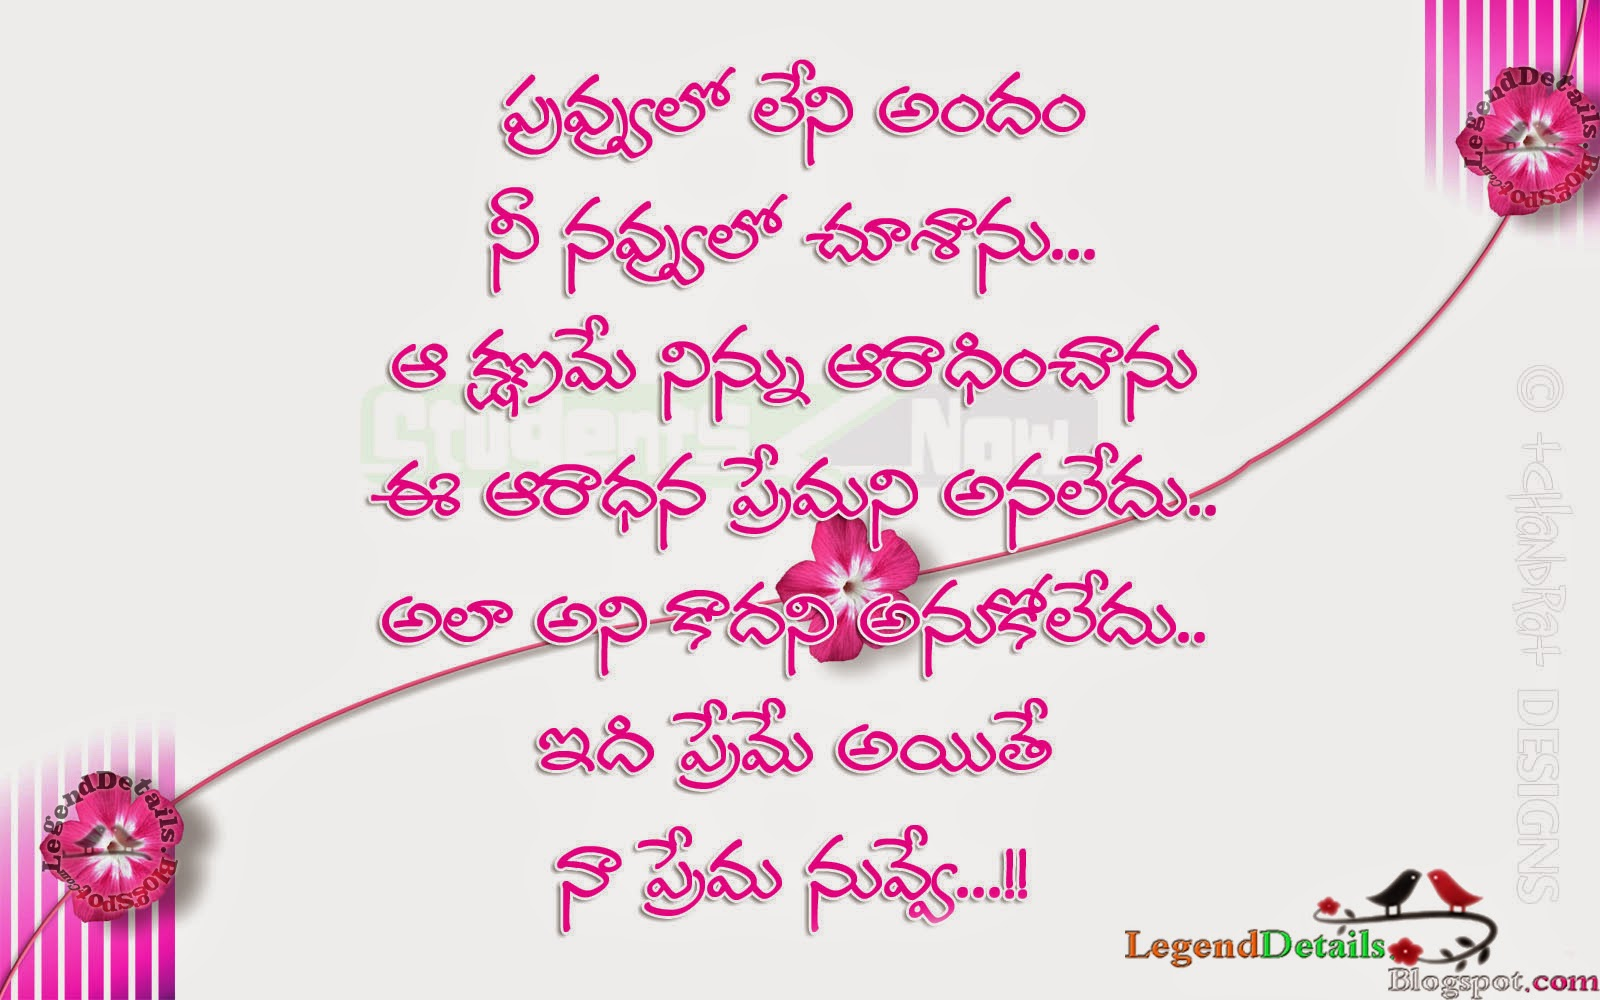 Famouse Love Quotes Famous Love Quotes In Telugu  Beautiful Love Quotes In Telugu